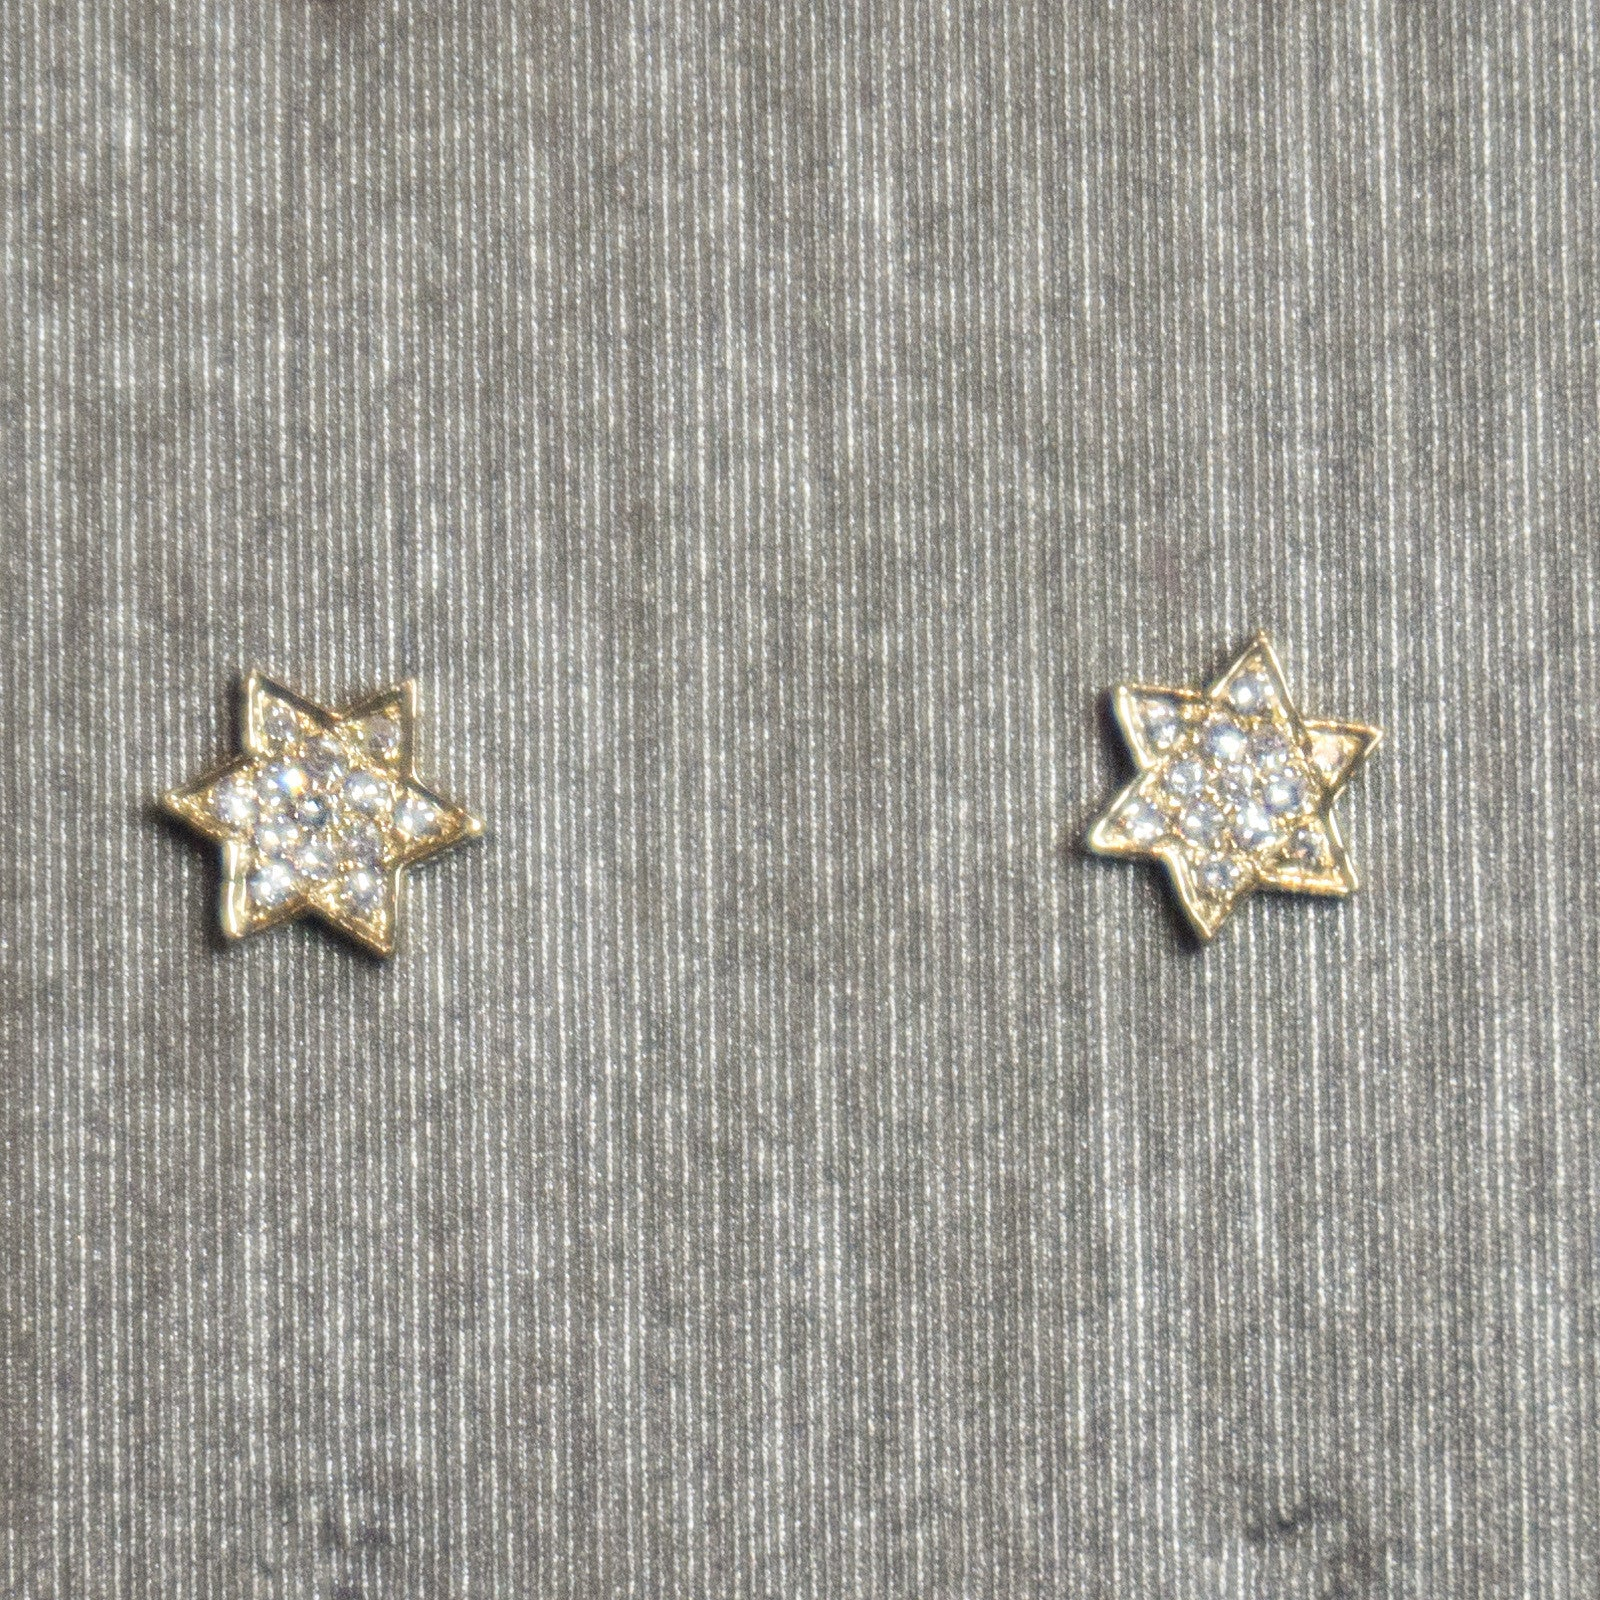 Rocks with Soul Jewish Star Studs Yellow Gold